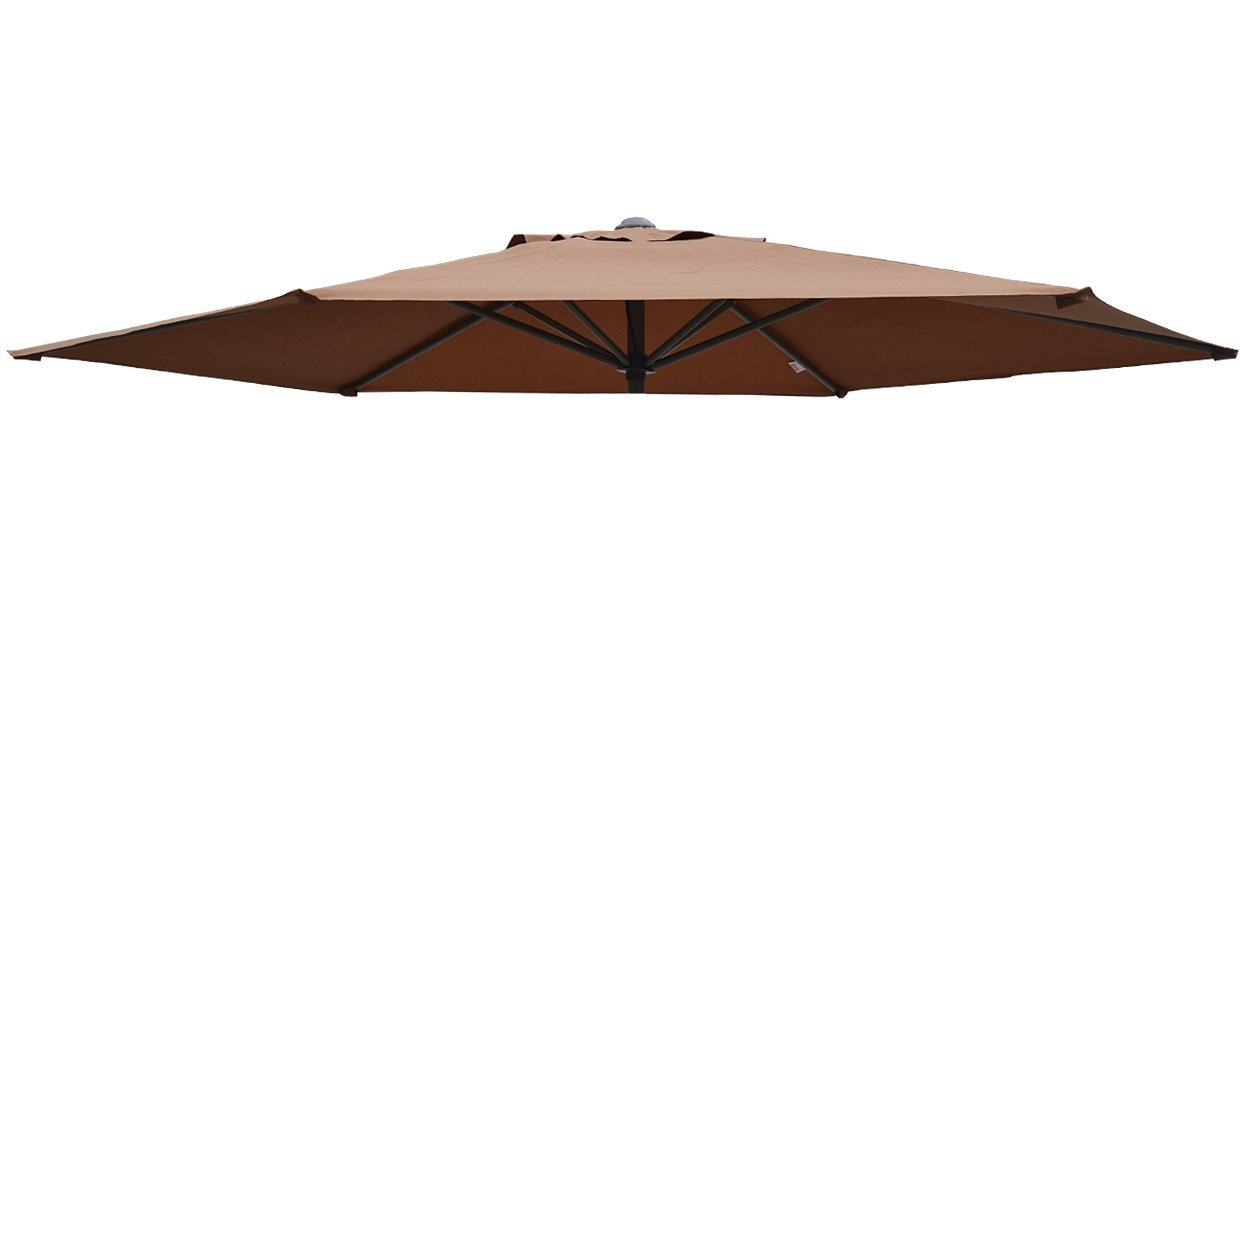 Replacement Patio Umbrella Canopy Cover For 9ft 6 Ribs Umbrella Taupe ( CANOPY ONLY)